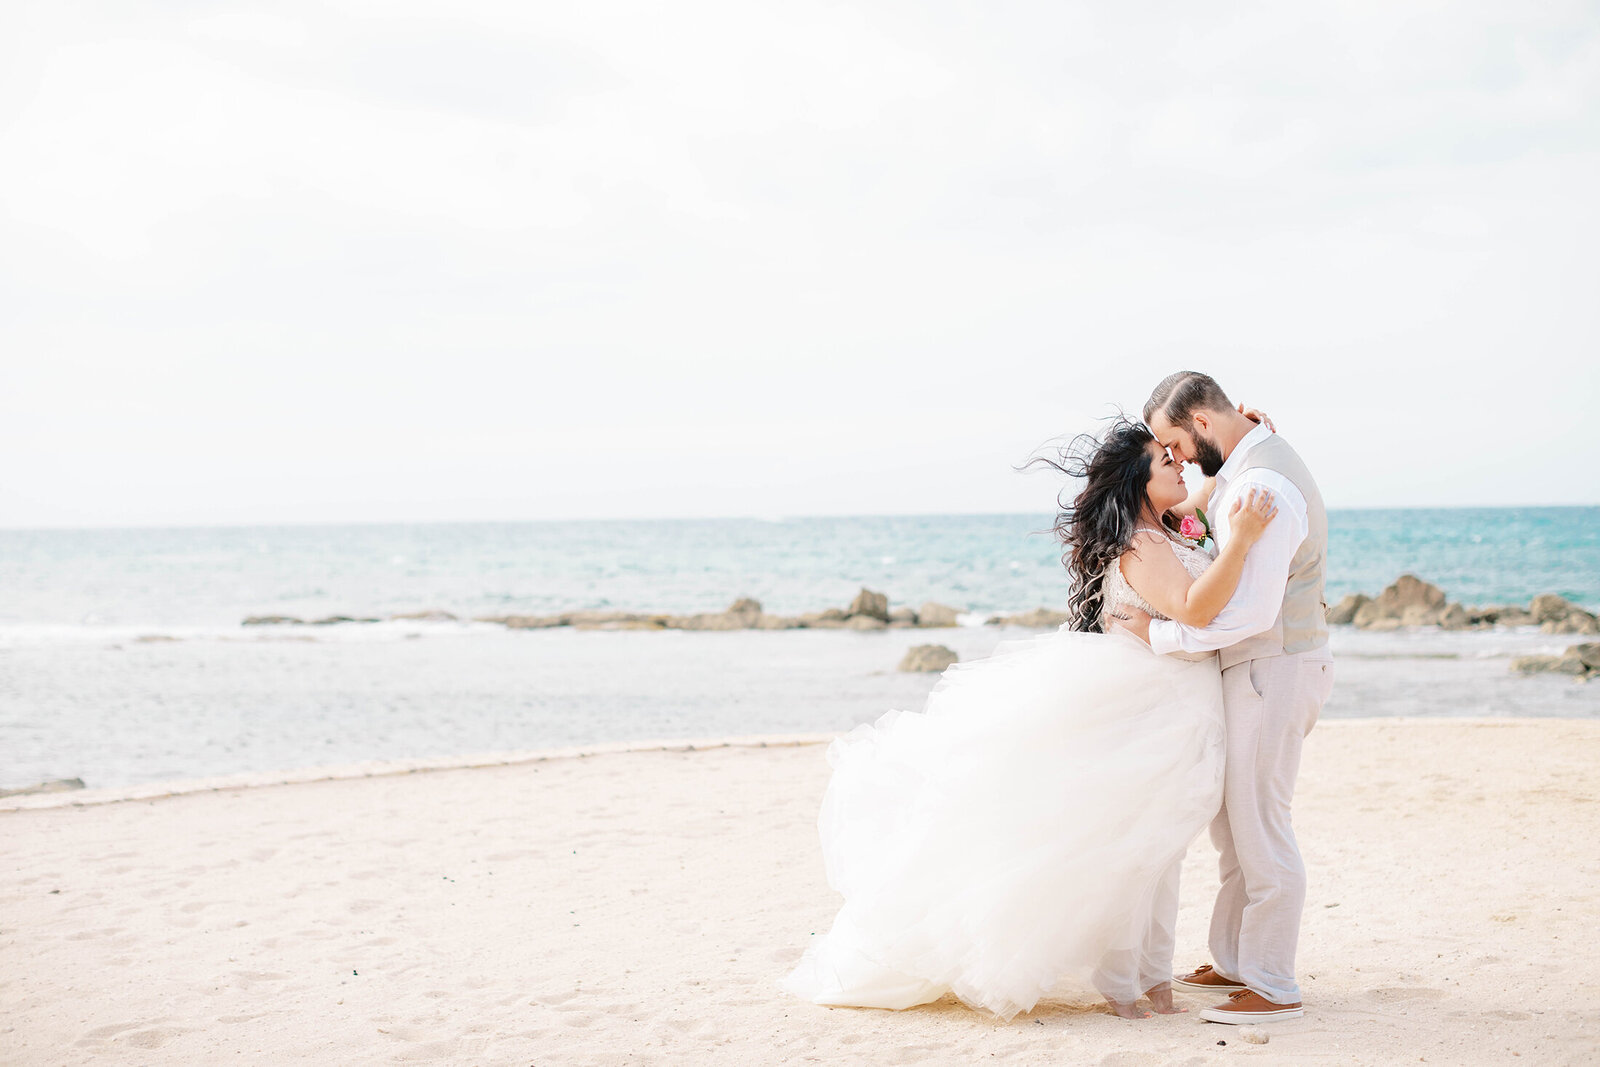 Jenny King Photography - Morgan & Stevie Martin - Destination Wedding - Melia Braco Village - Jamaica - Destination Wedding Photographer - 28